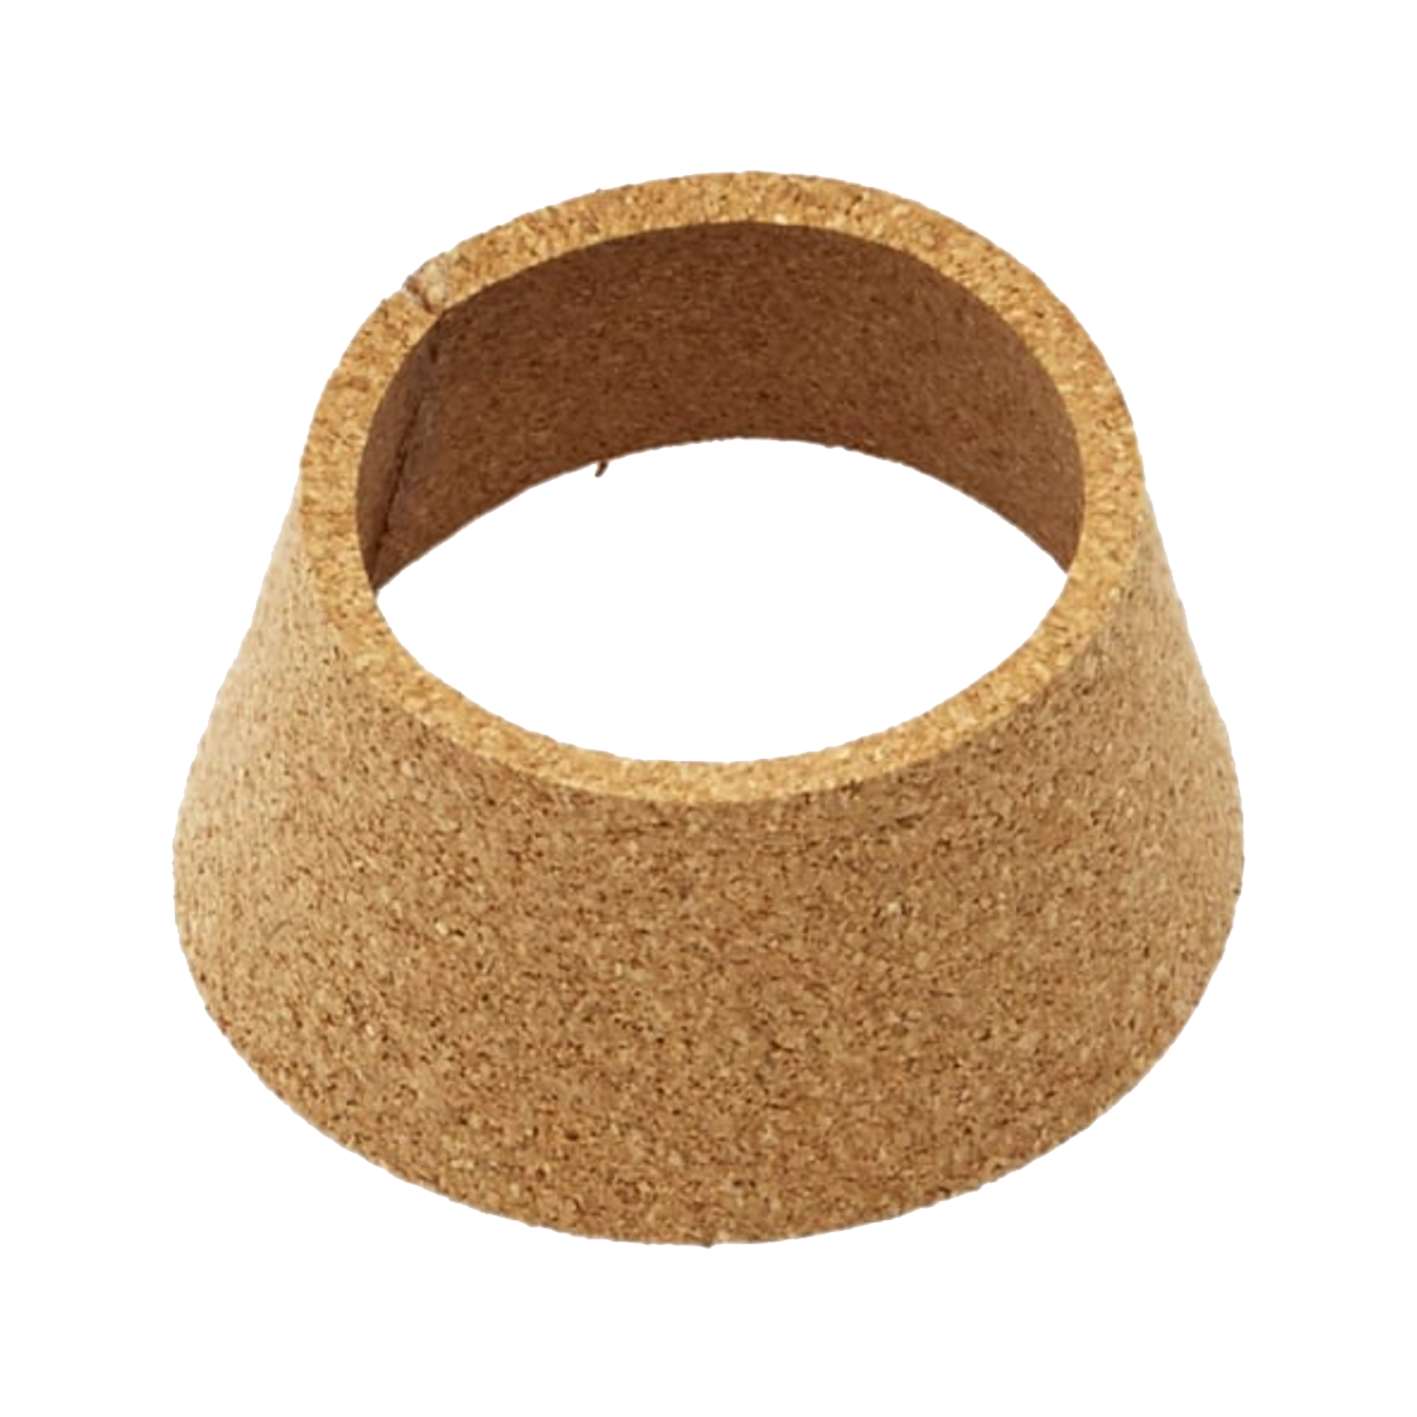 Denis Wick - Trumpet Extending Tube Mute Cork Replacement Set-Brass Mutes-Denis Wick-Music Elements